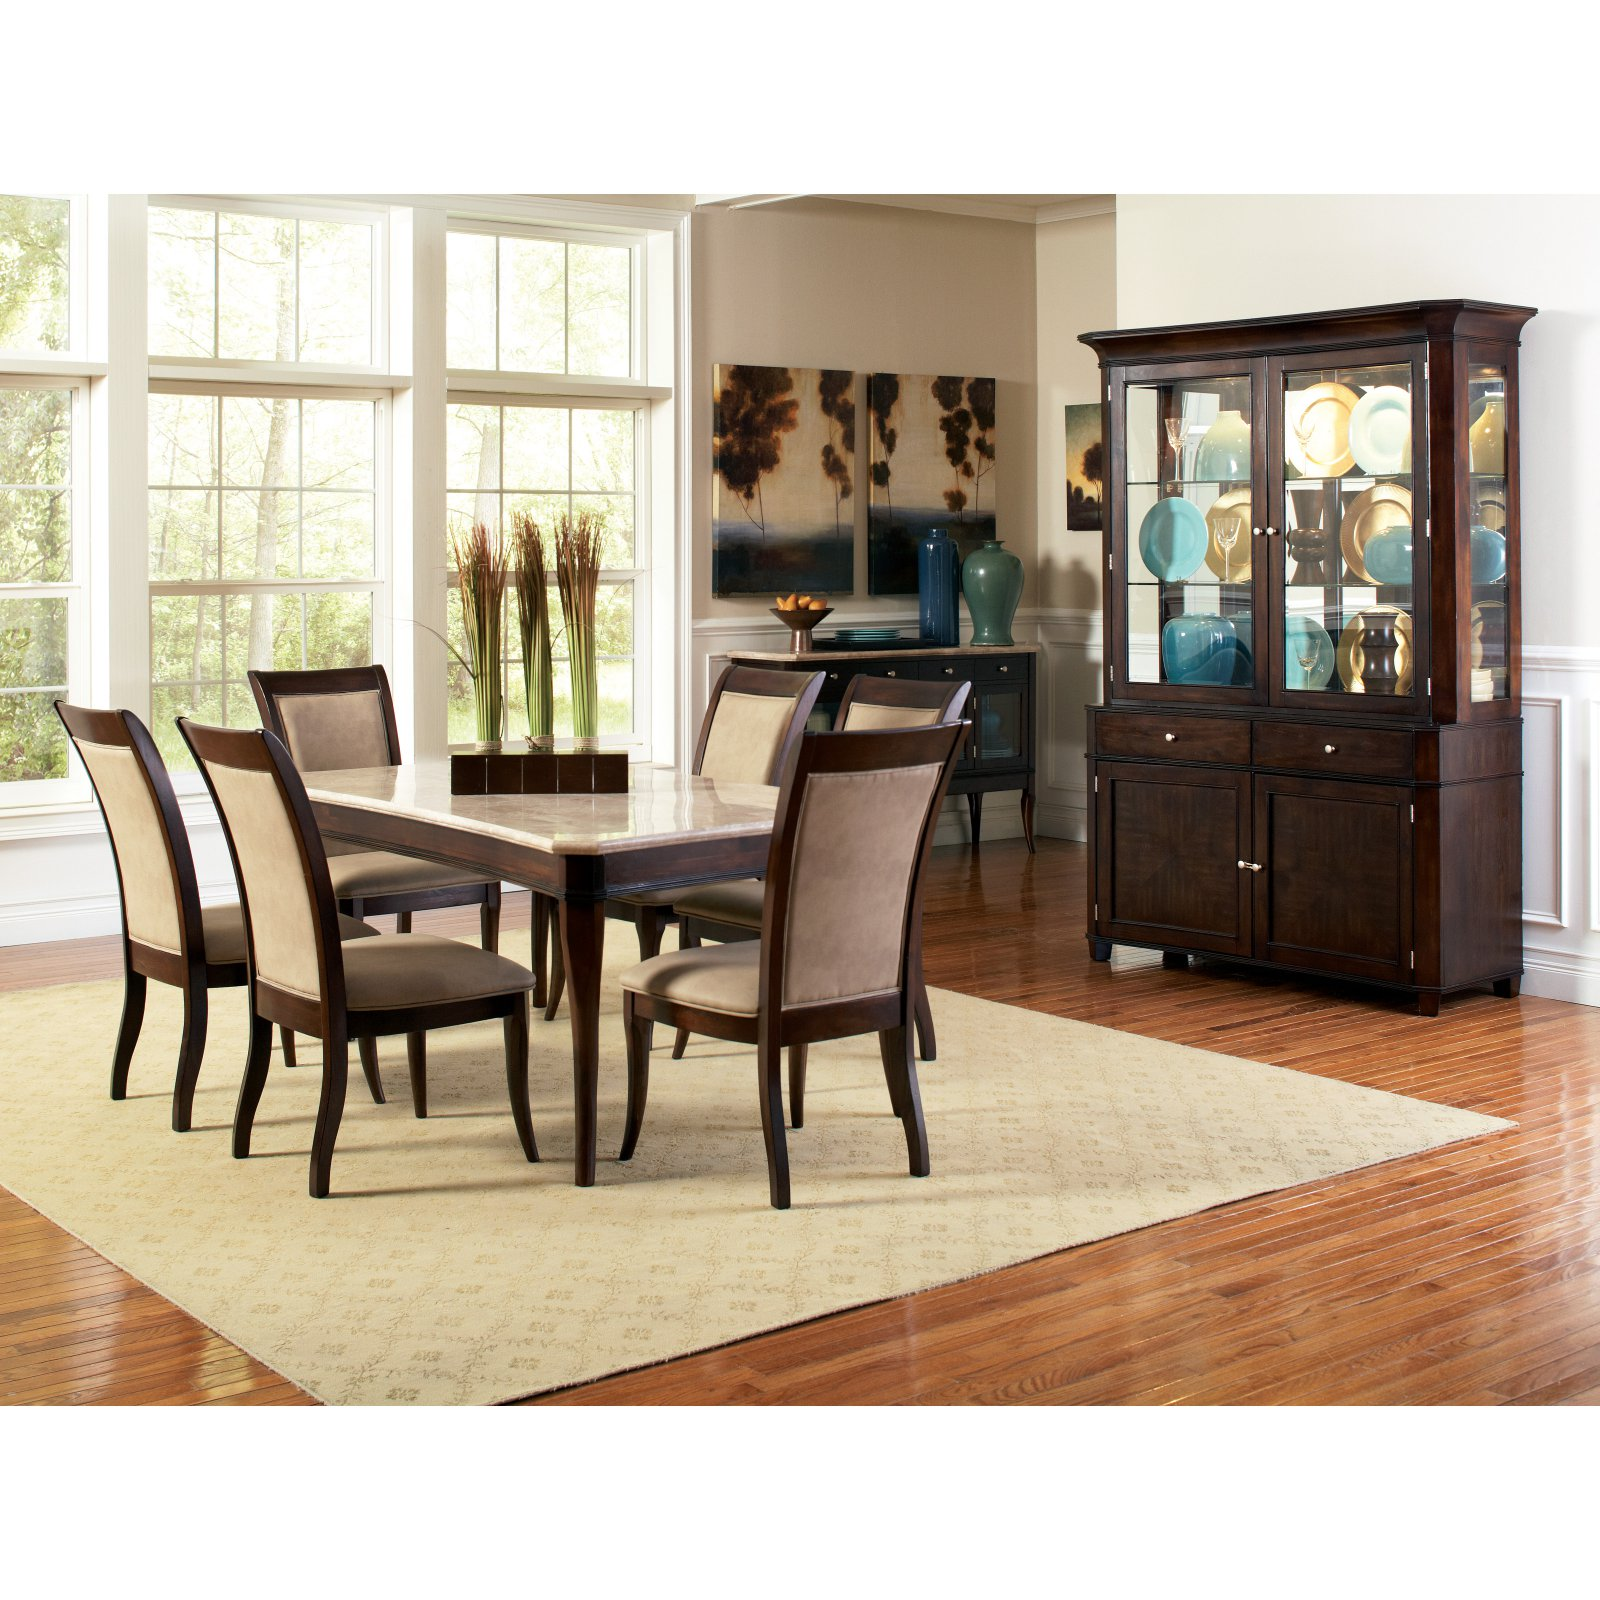 Steve Silver 7 Piece Marseille Marble Top Dining Table Set - Dark Cherry